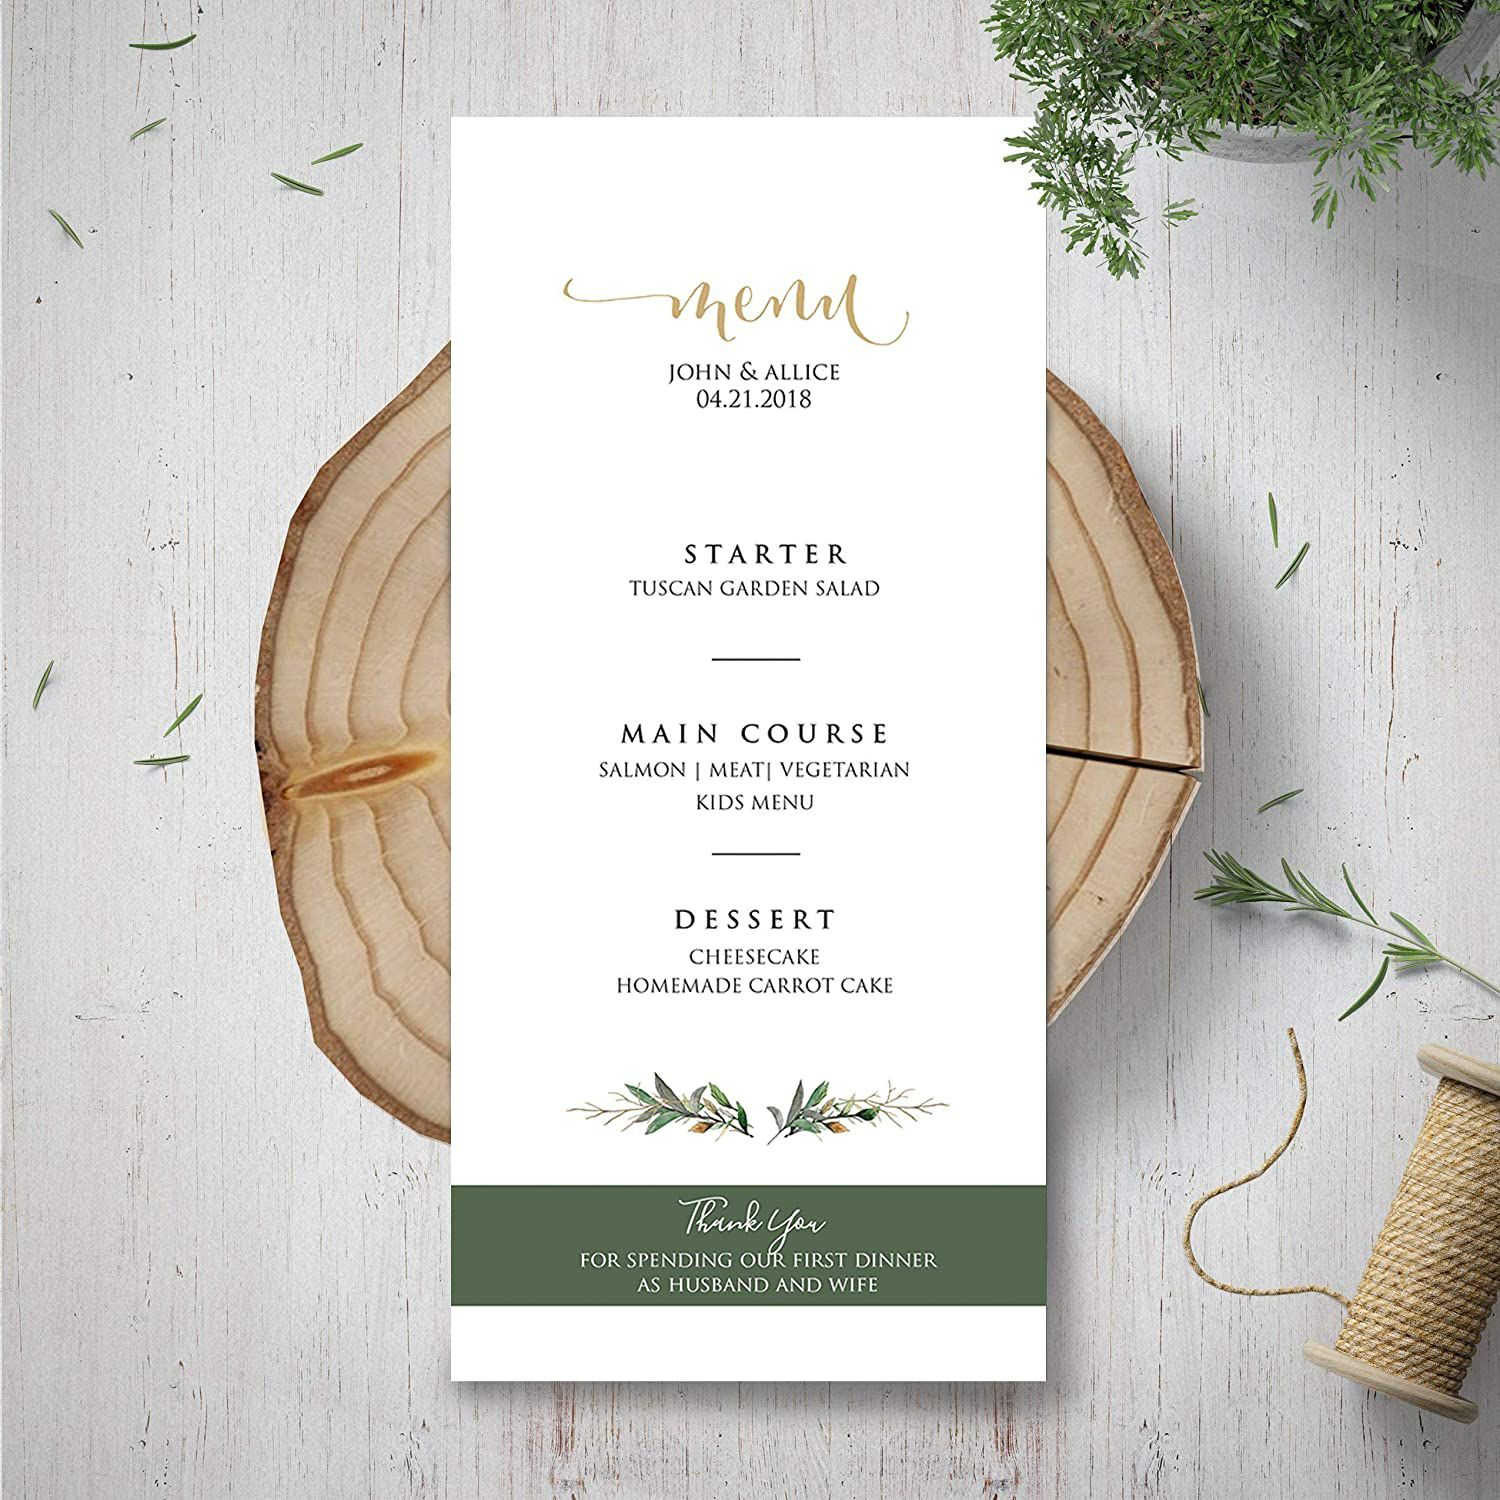 003 Exceptional Dinner Party Menu Template Inspiration  Word Elegant Free Google DocFull